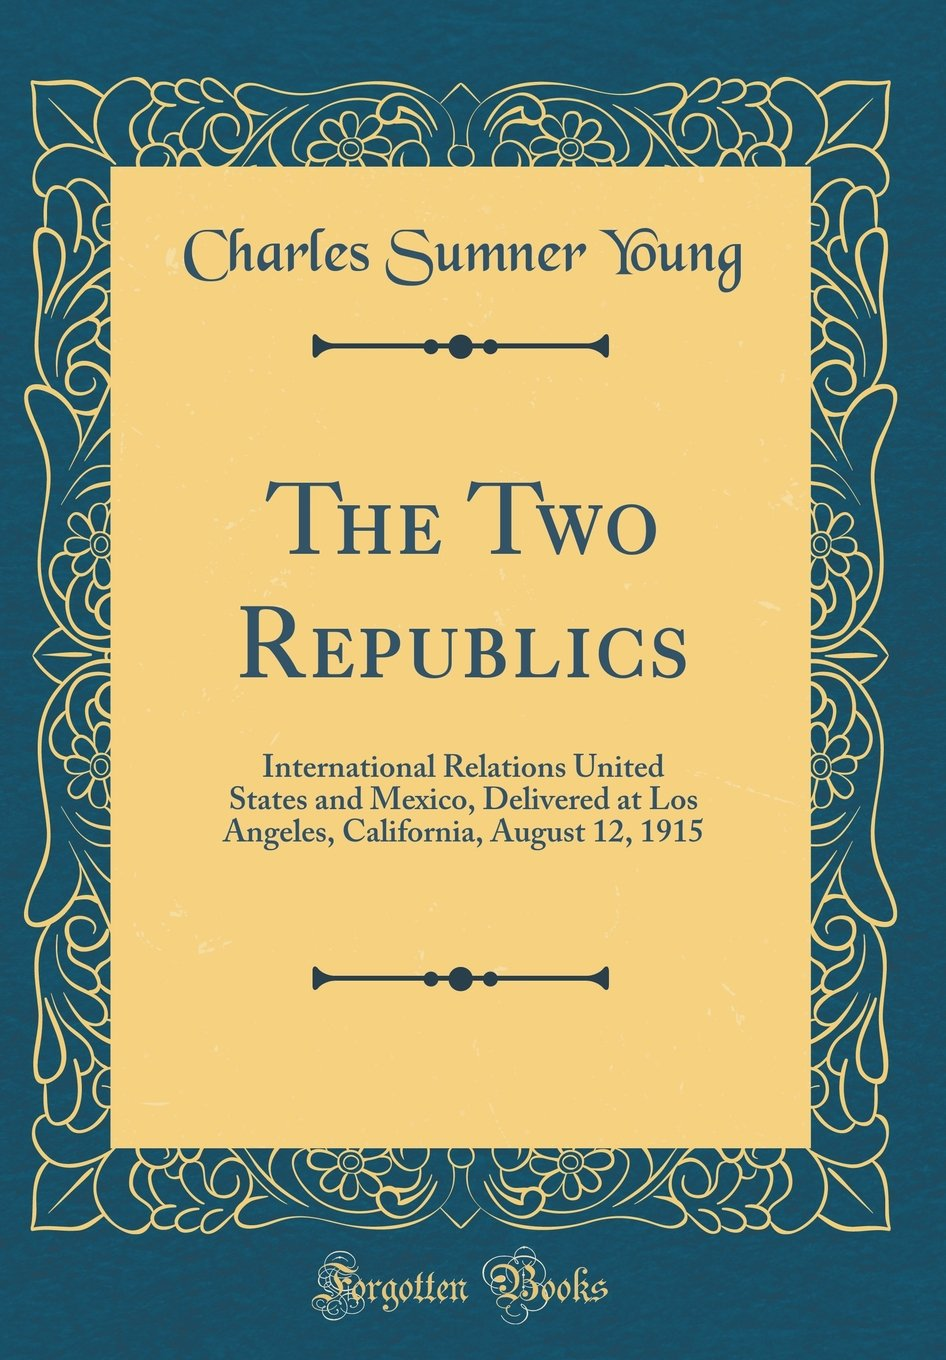 The Two Republics: International Relations United States and Mexico, Delivered at Los Angeles, California, August 12, 1915 (Classic Reprint) ePub fb2 book